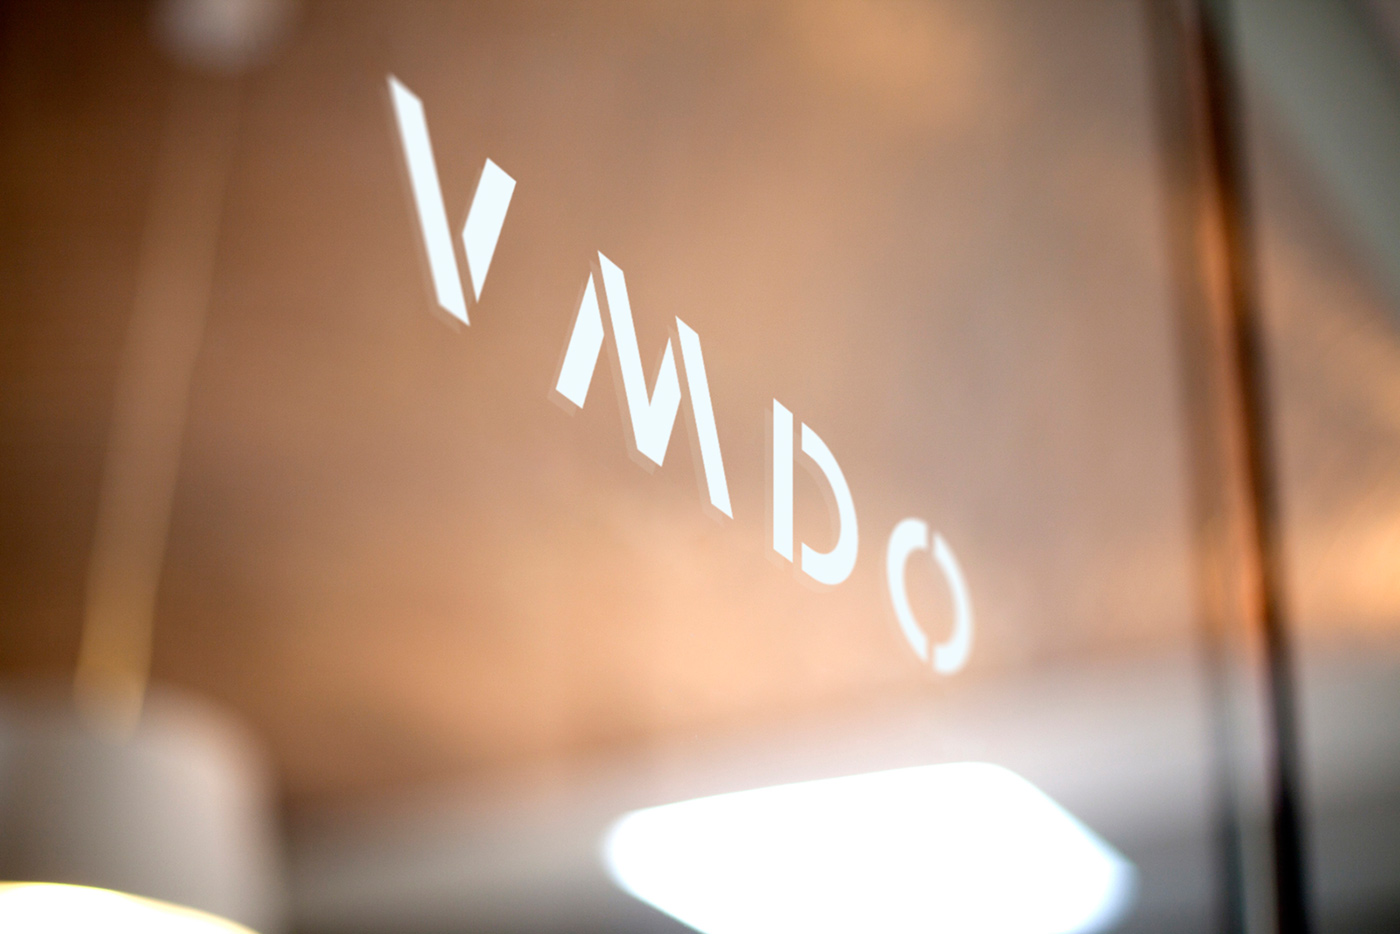 VMDO Architecture Firm Rebrand - After